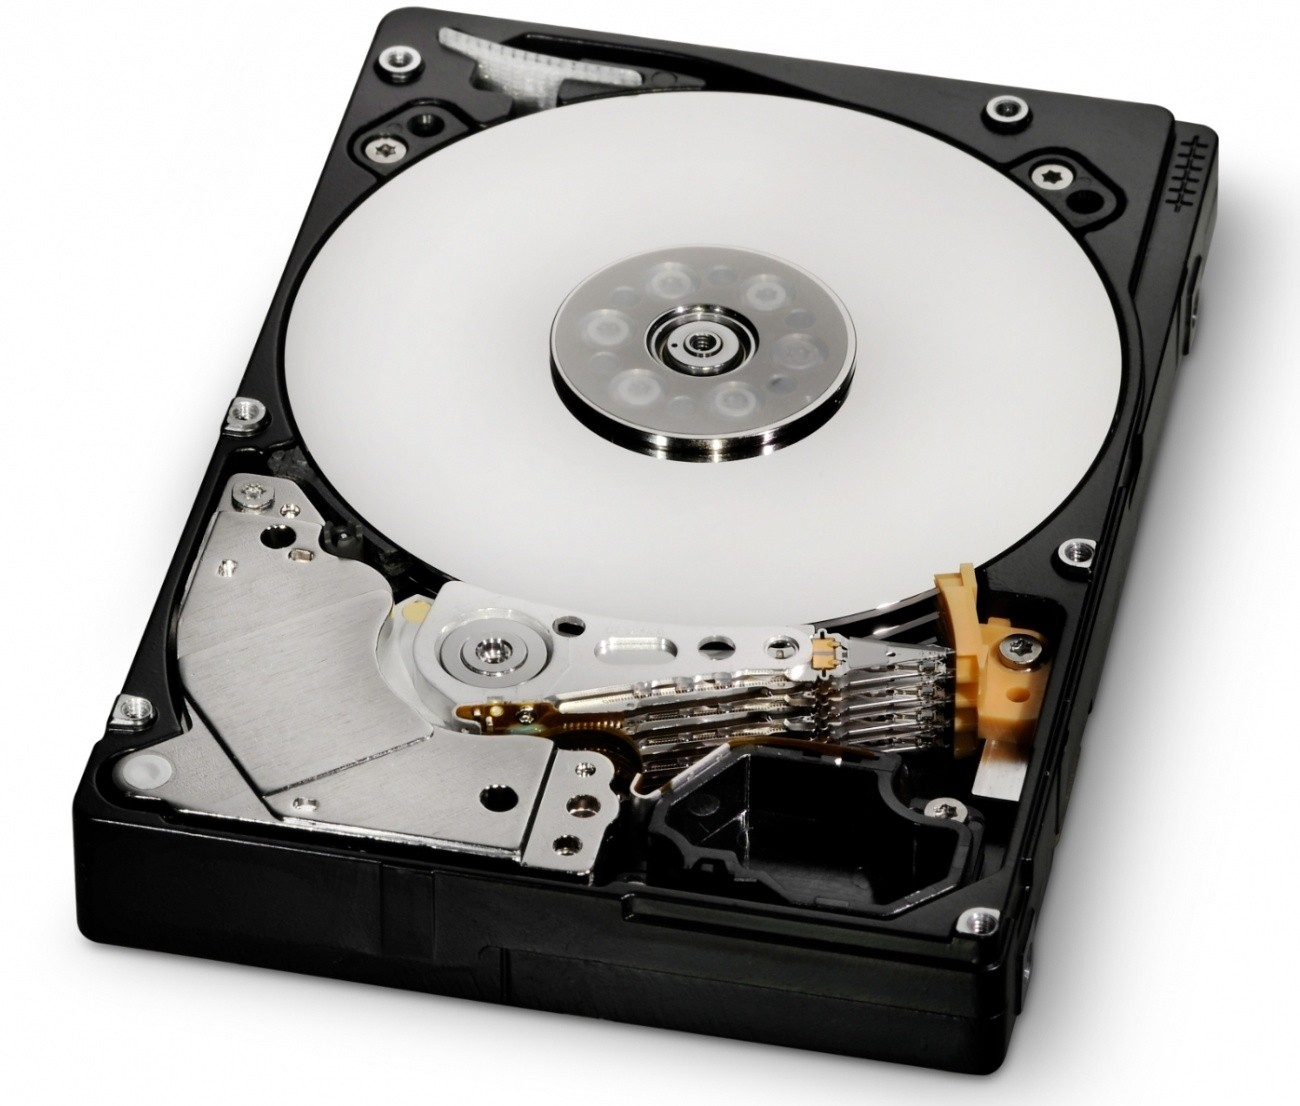 hgst_introduces_1_2tb_ultrastar_c10k1200_10_000_rpm_enterprise_hdd